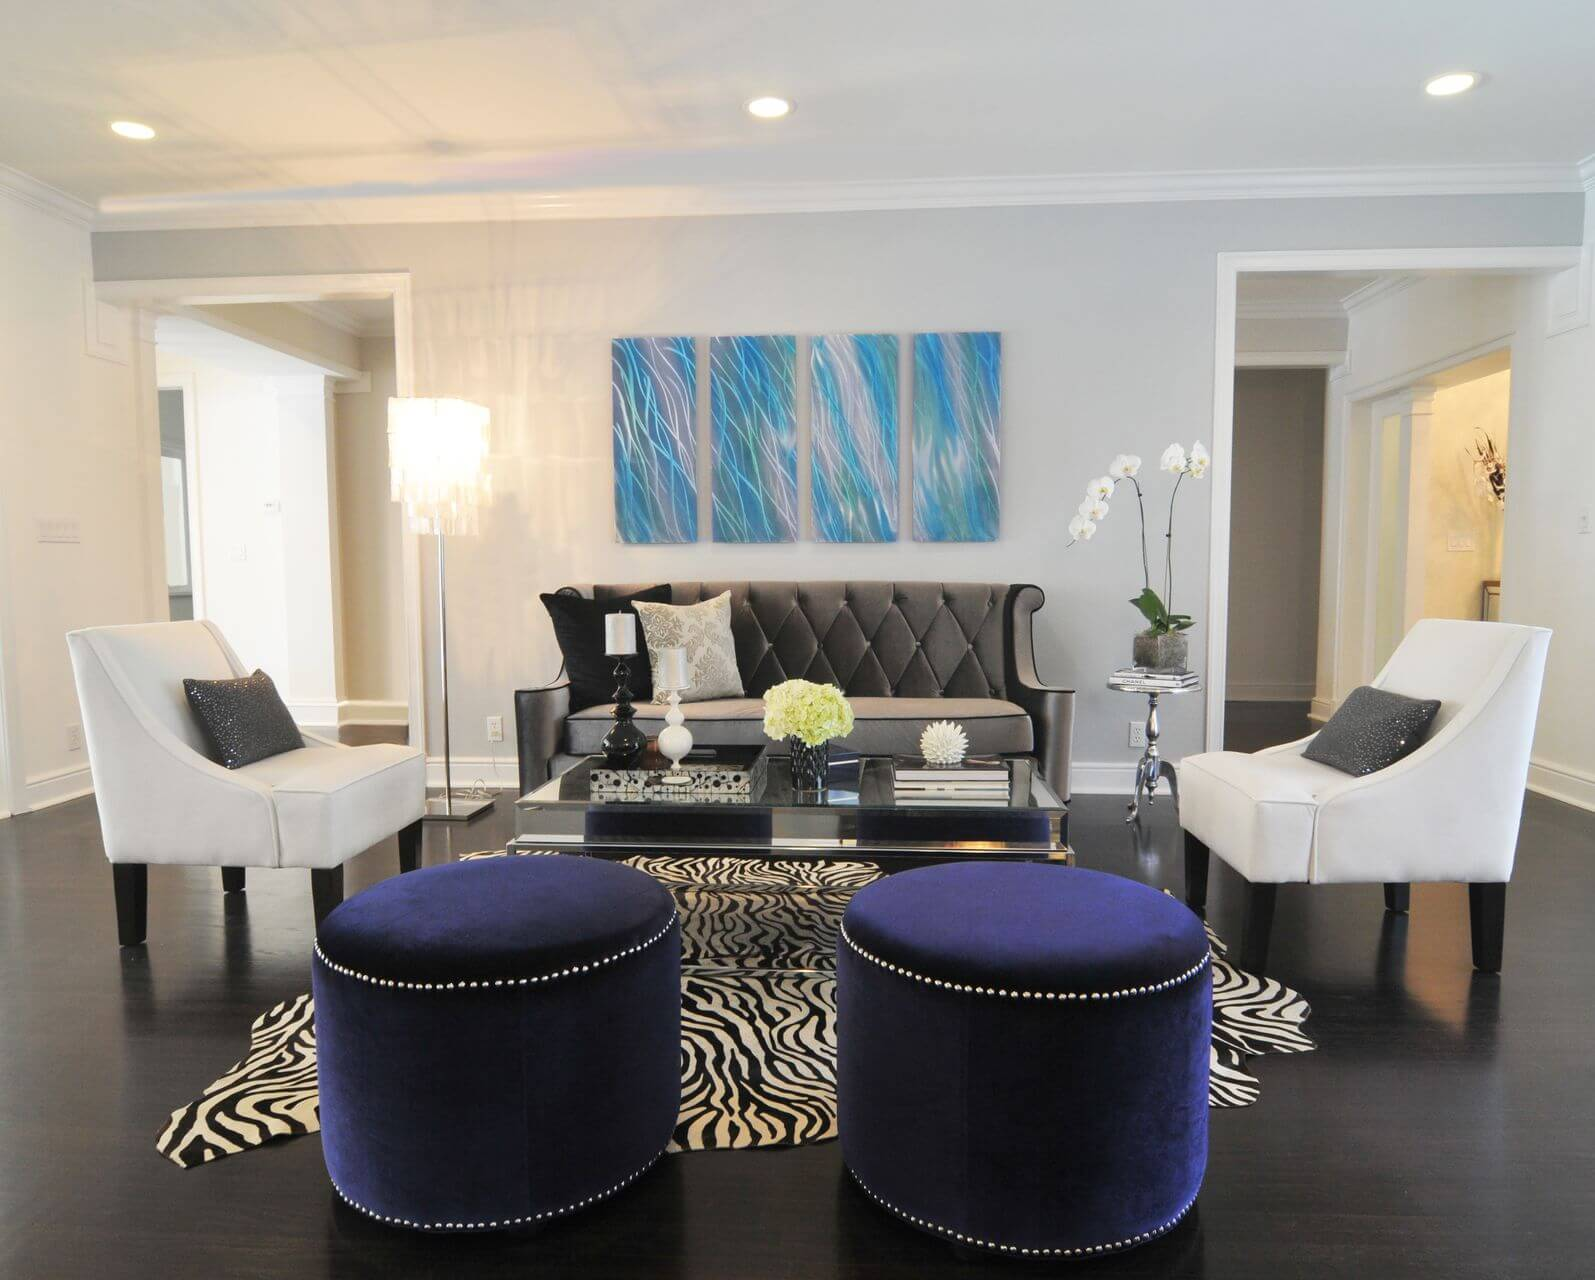 Small Contemporary Living Room With Dark Floor On Which Is An  Abstract Shaped Zebra Print